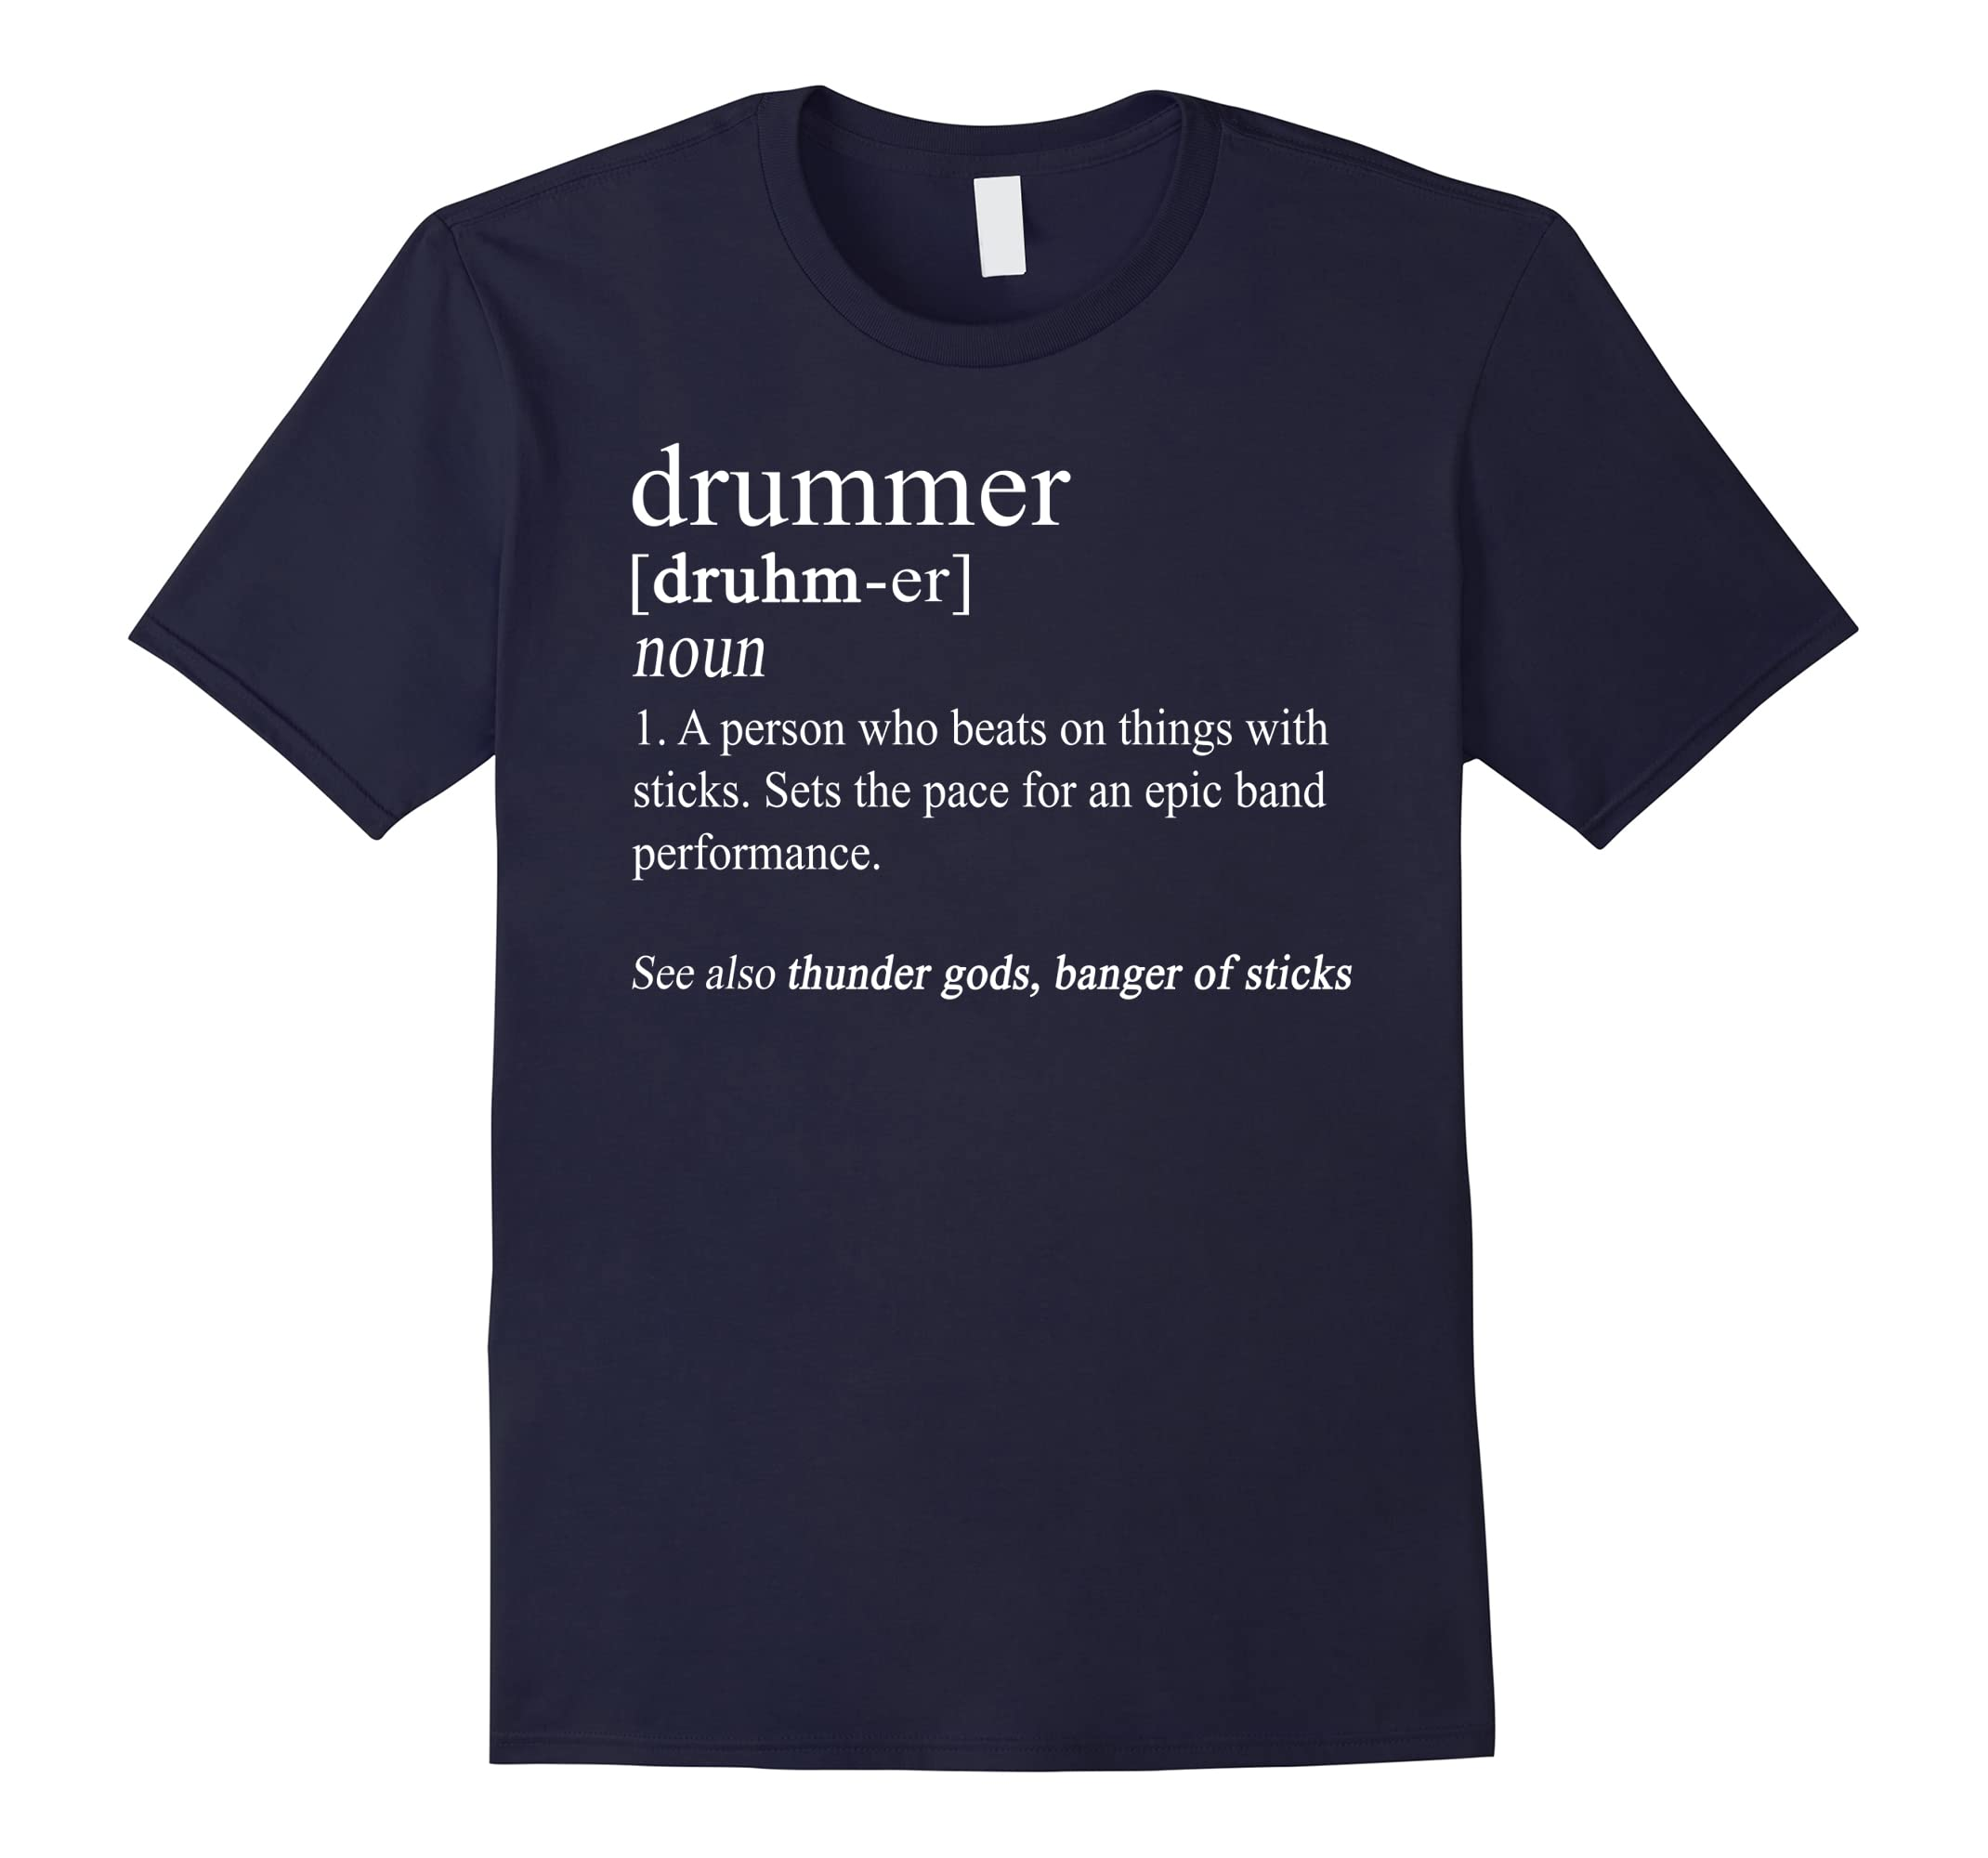 94c85d66f Funny Drummer Shirts Drum Gifts Drumming Definition T Shirt-RT ...